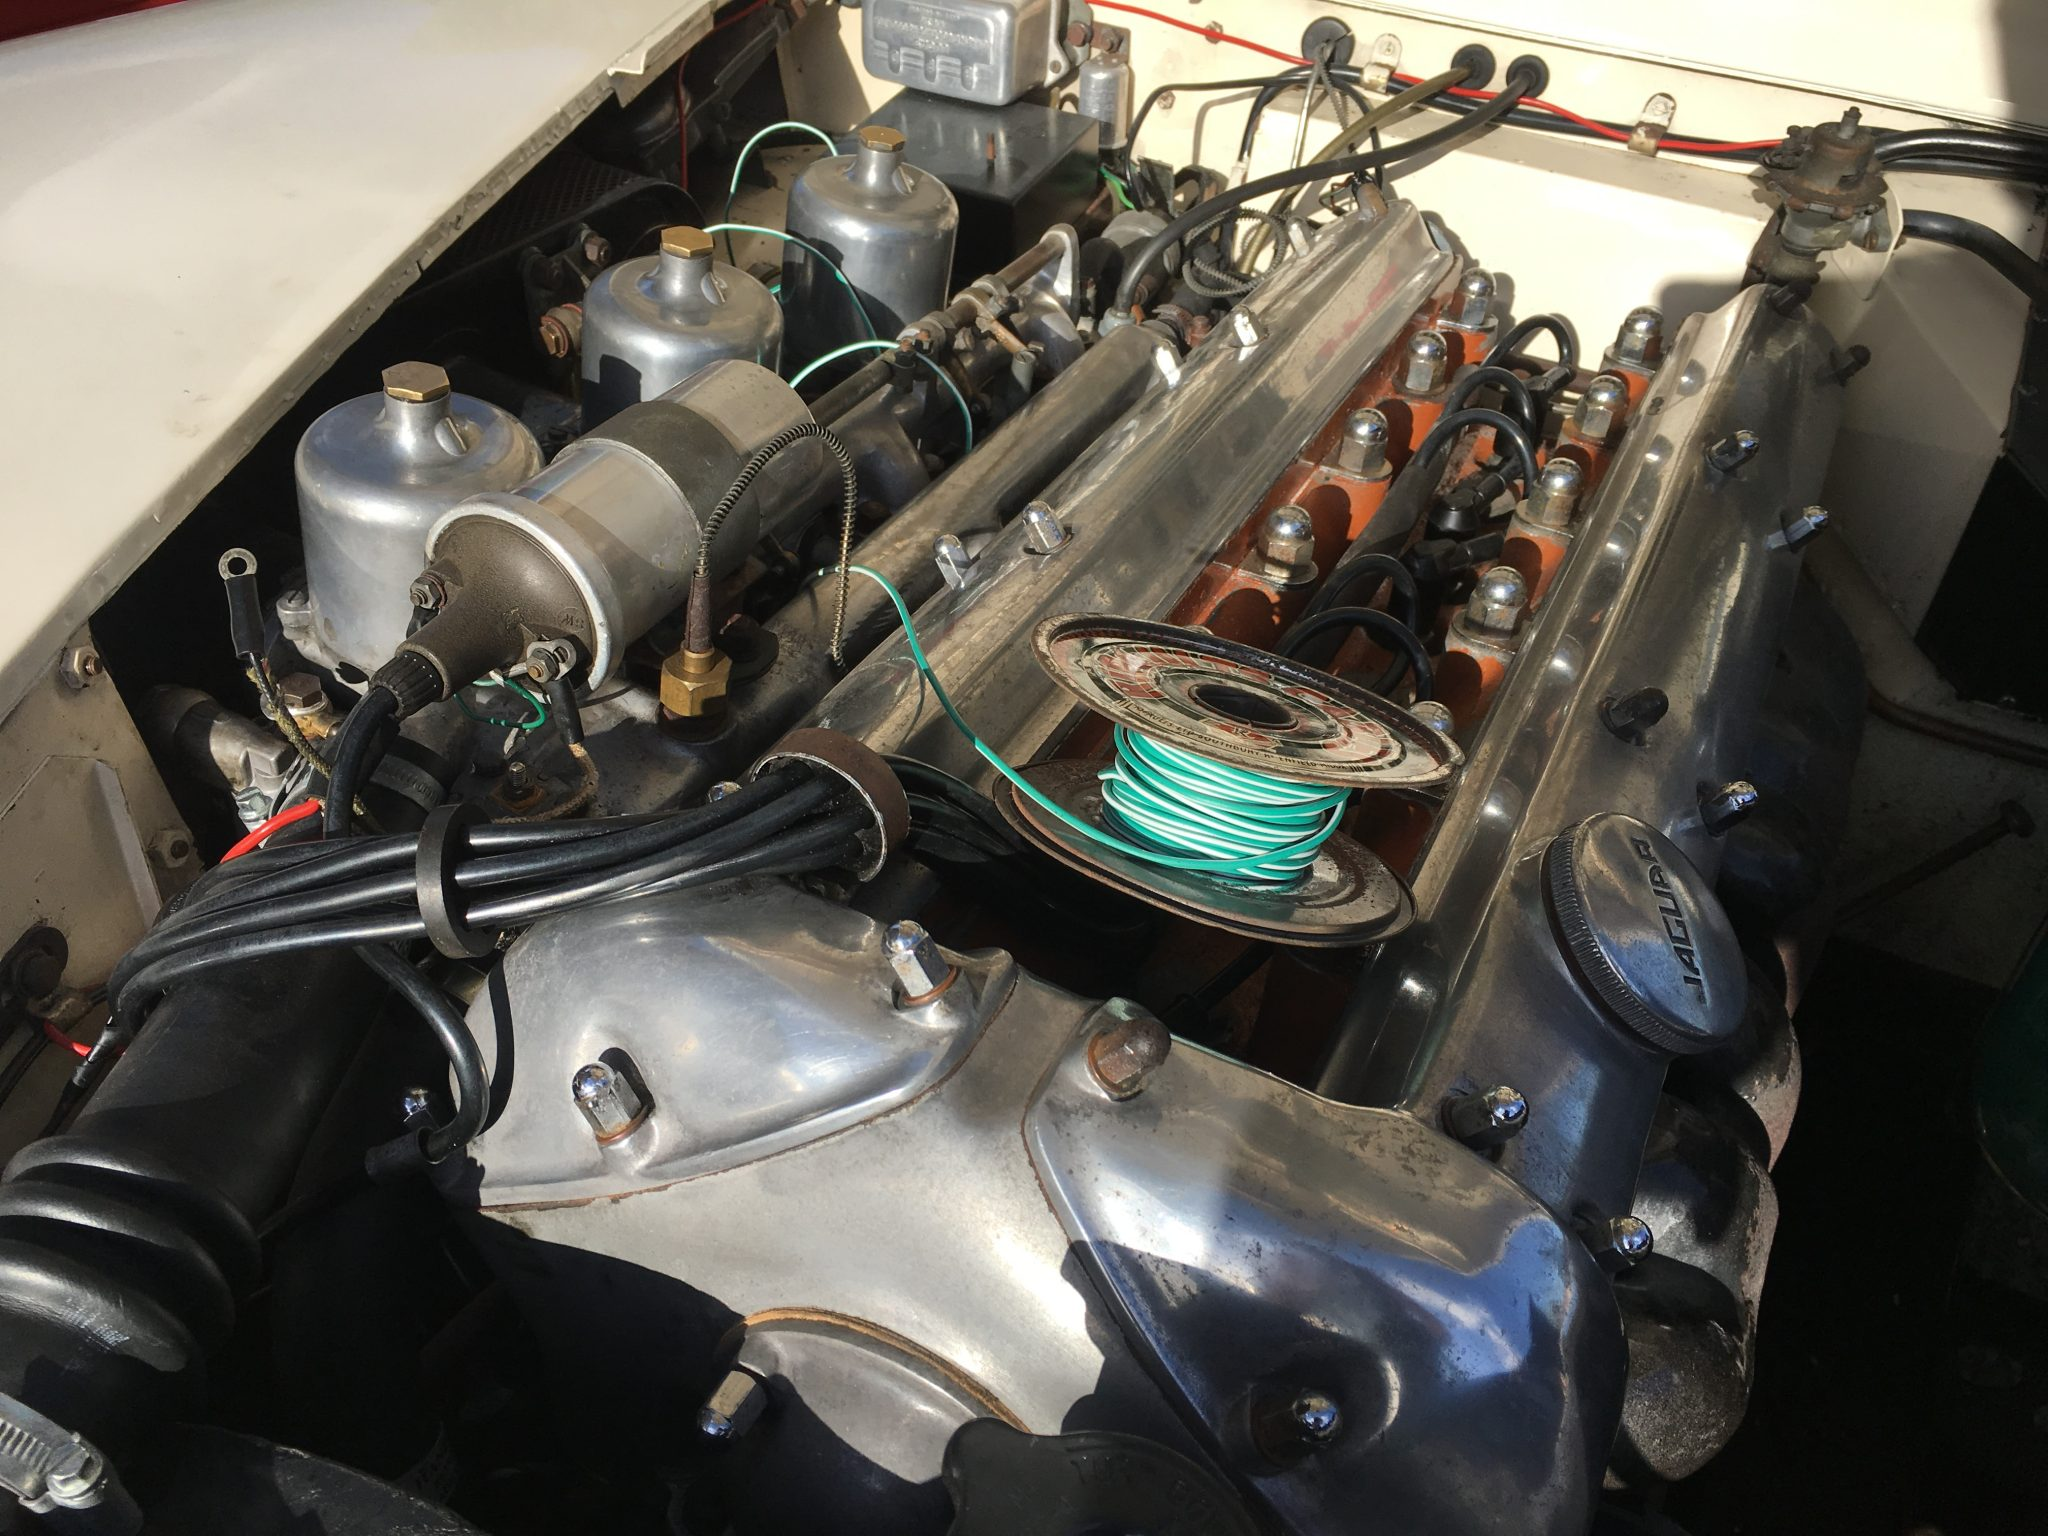 Jaguar XK150 carbs are clogging up